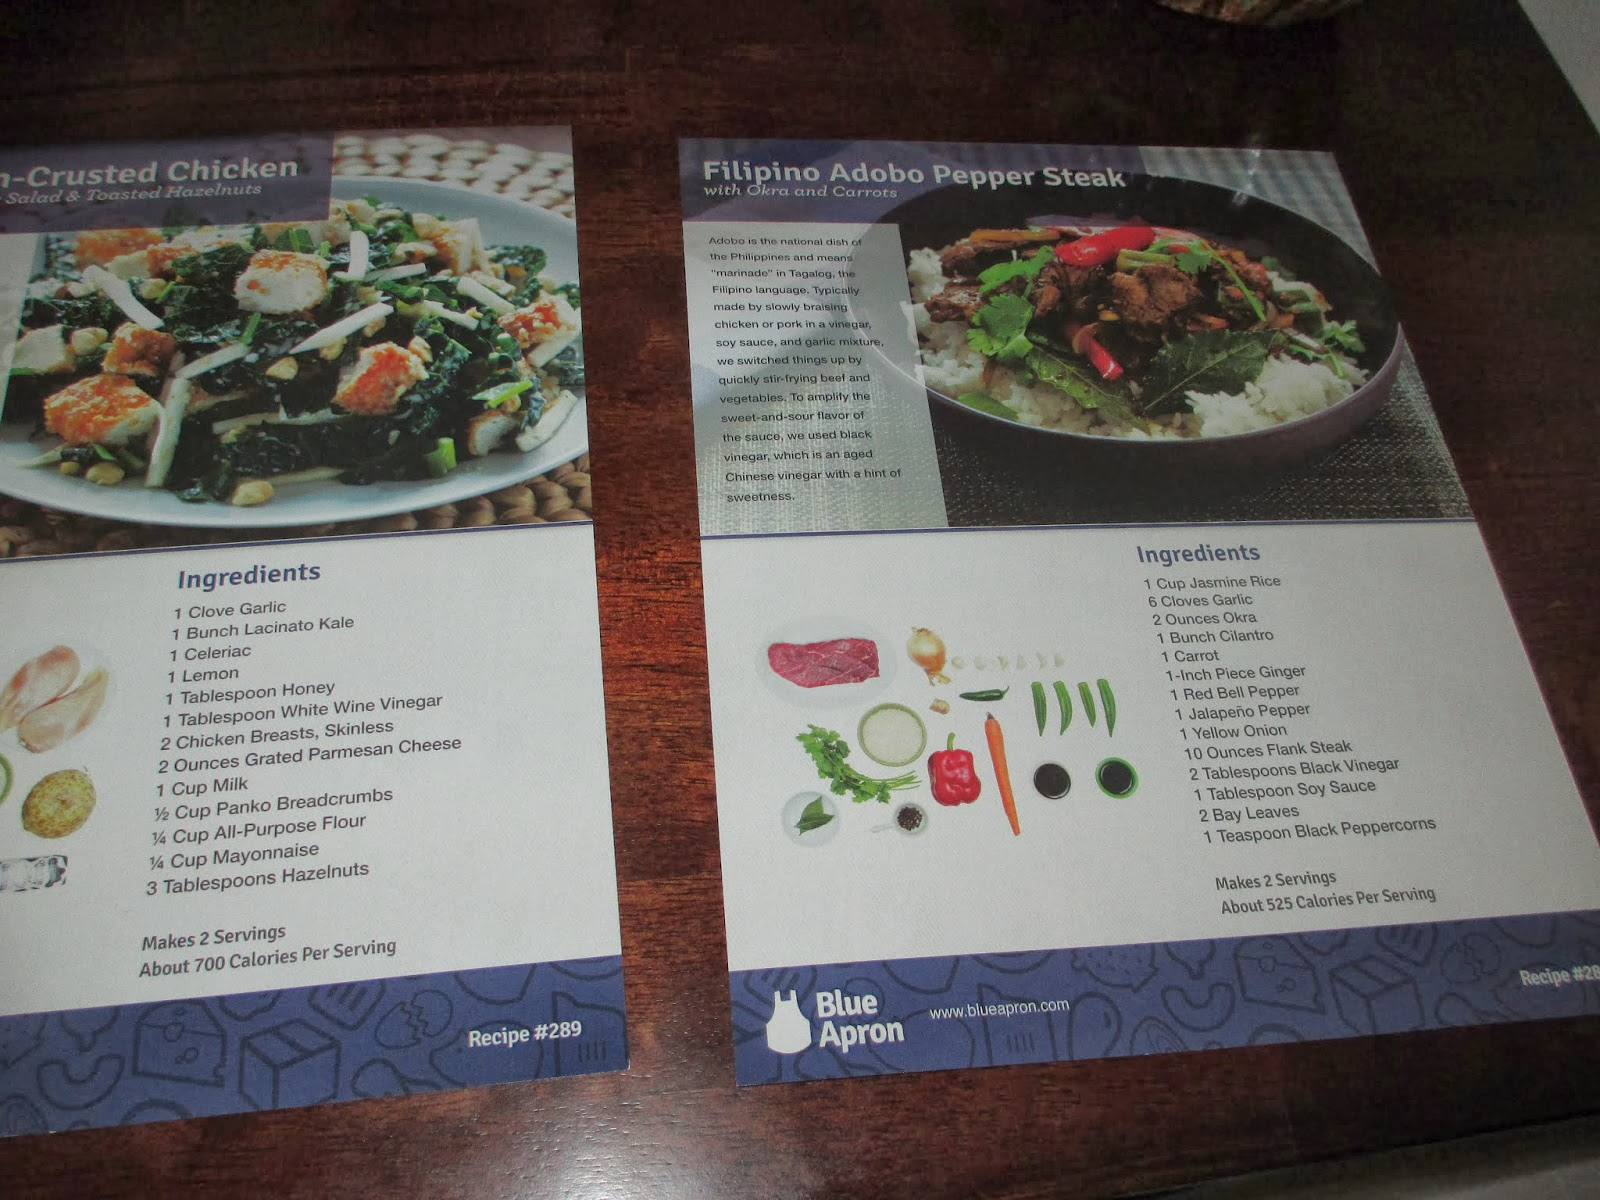 Blue apron ice packs